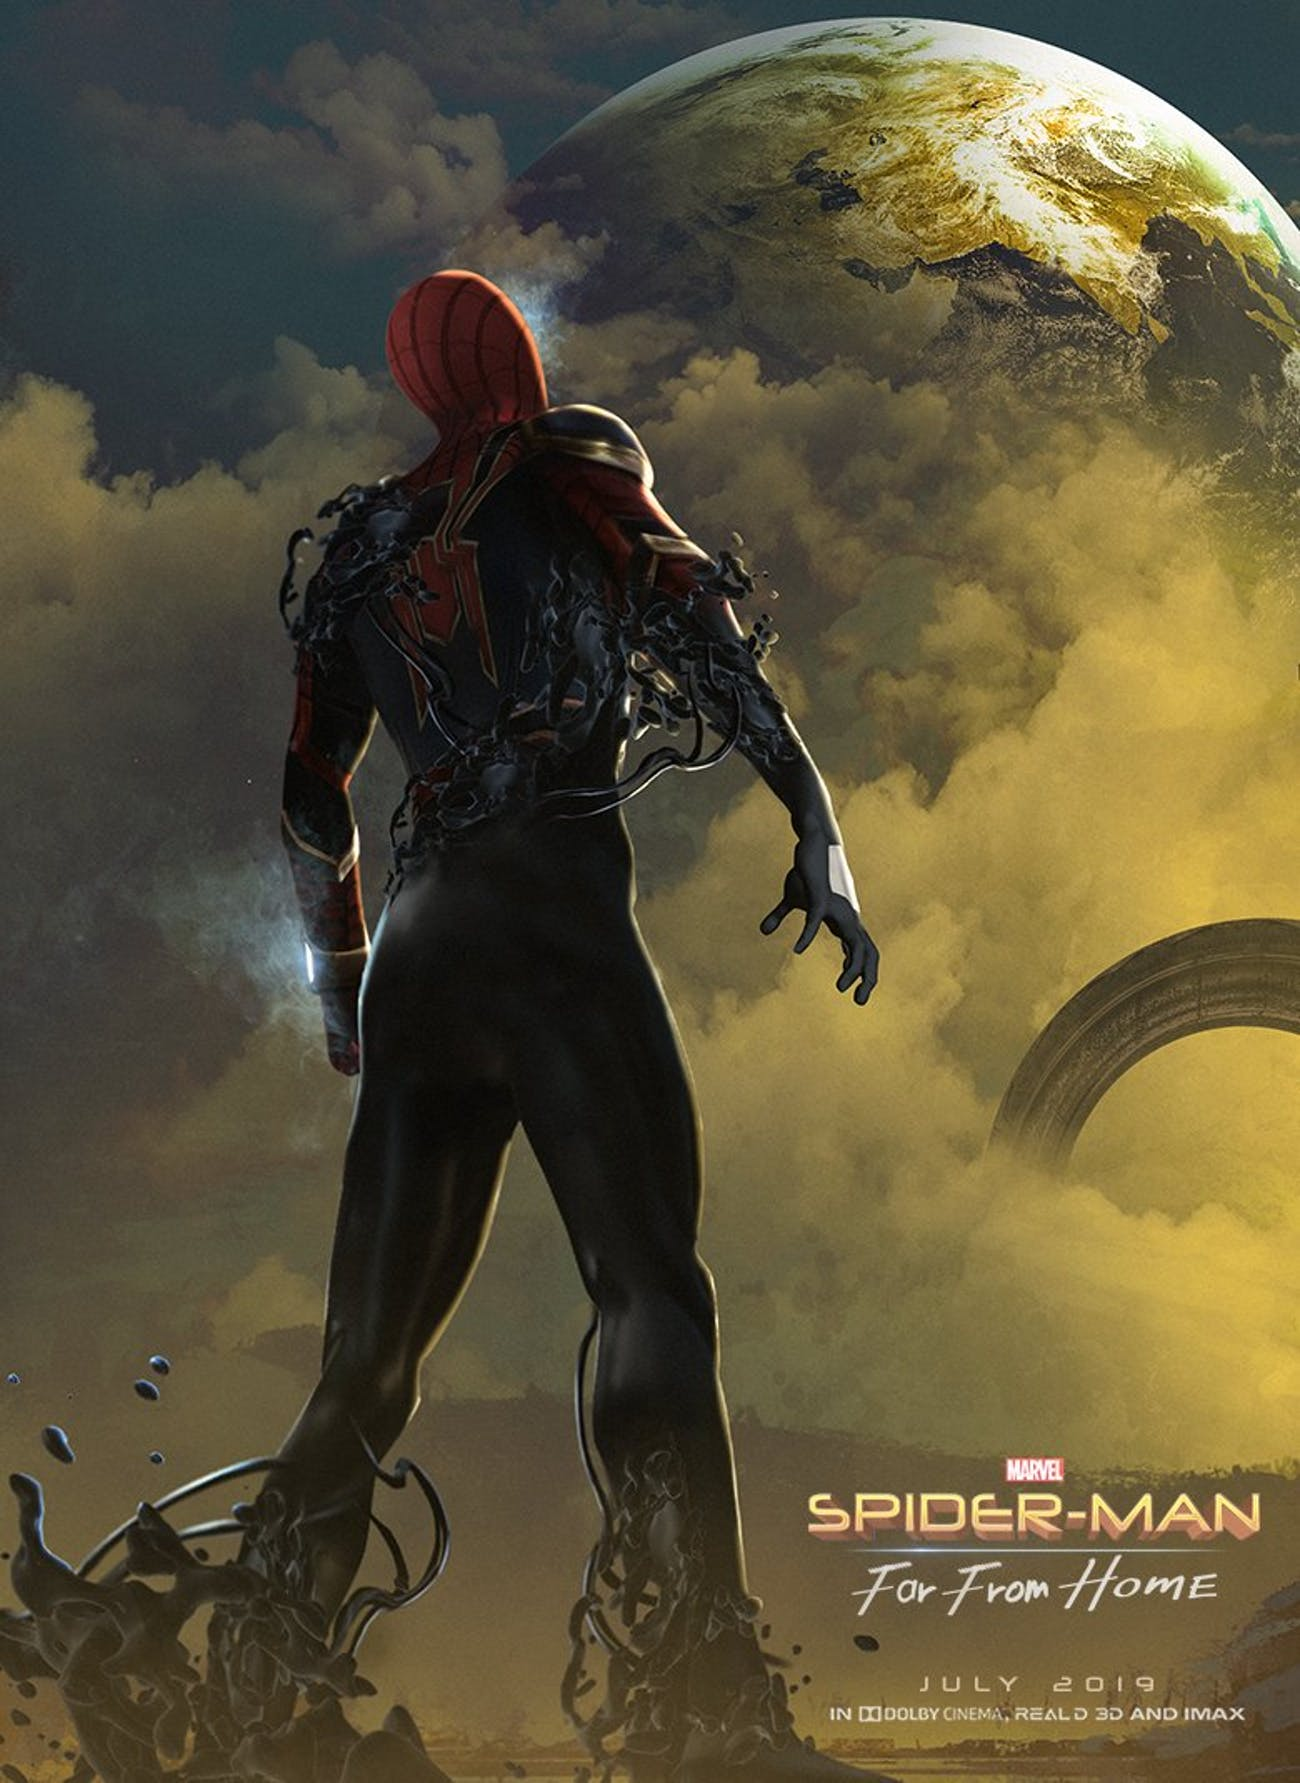 Bosslogic's fan-made poster for 'Spider-Man: Far From Home' has us all wishing the Venom symbiote would factor into the next movie.